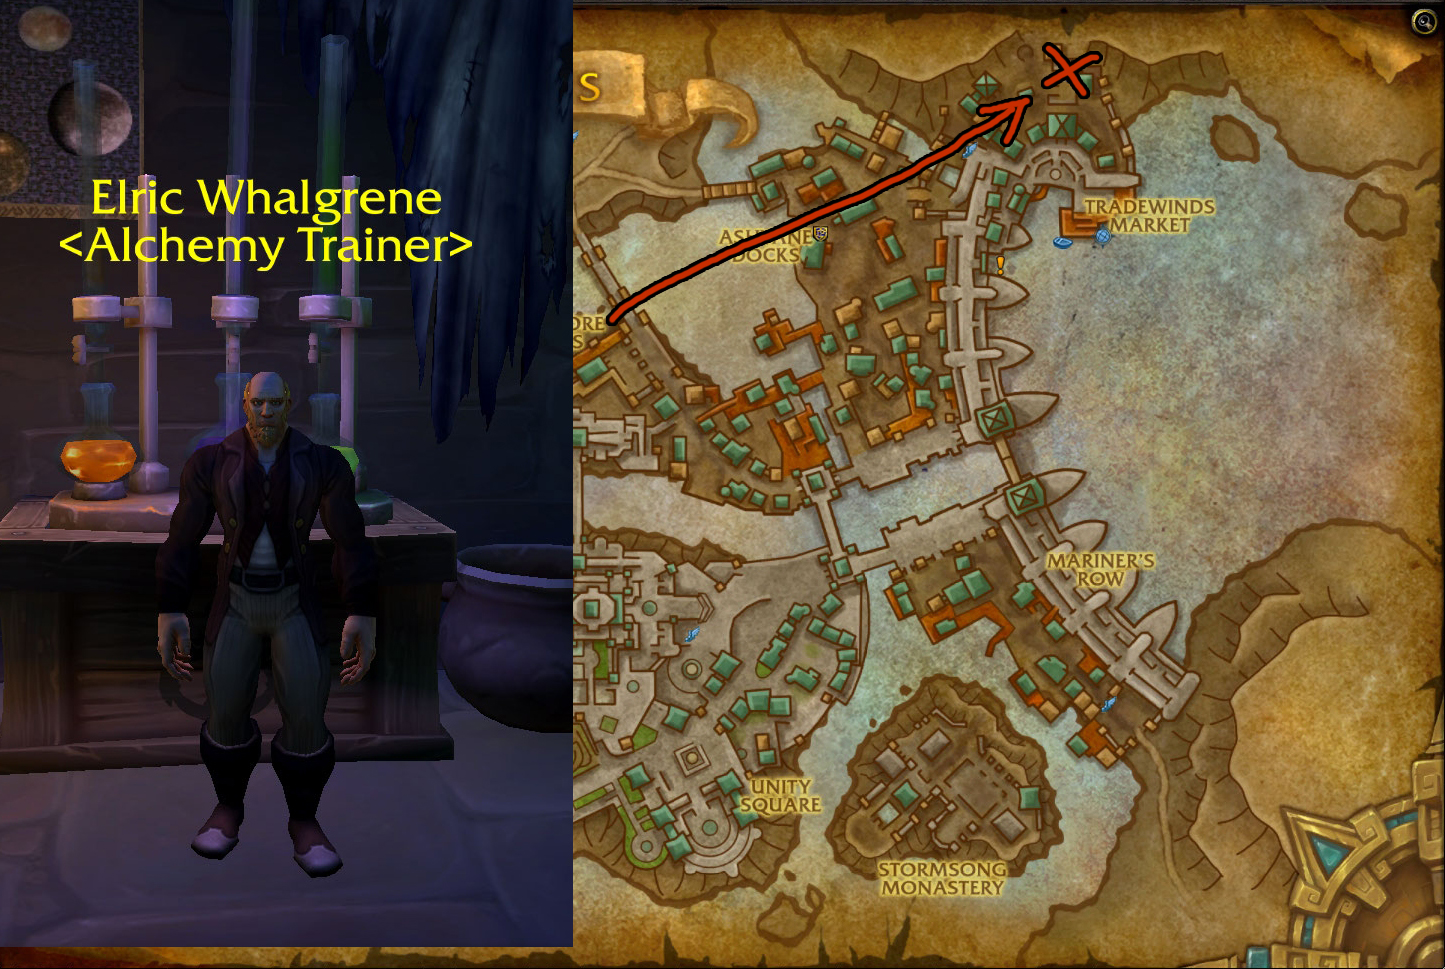 bfa alchemy leveling guide 1 150 wow alchemy guide rh wow professions com 1-110 Leveling Guide WoW WoW Alliance Leveling Guide